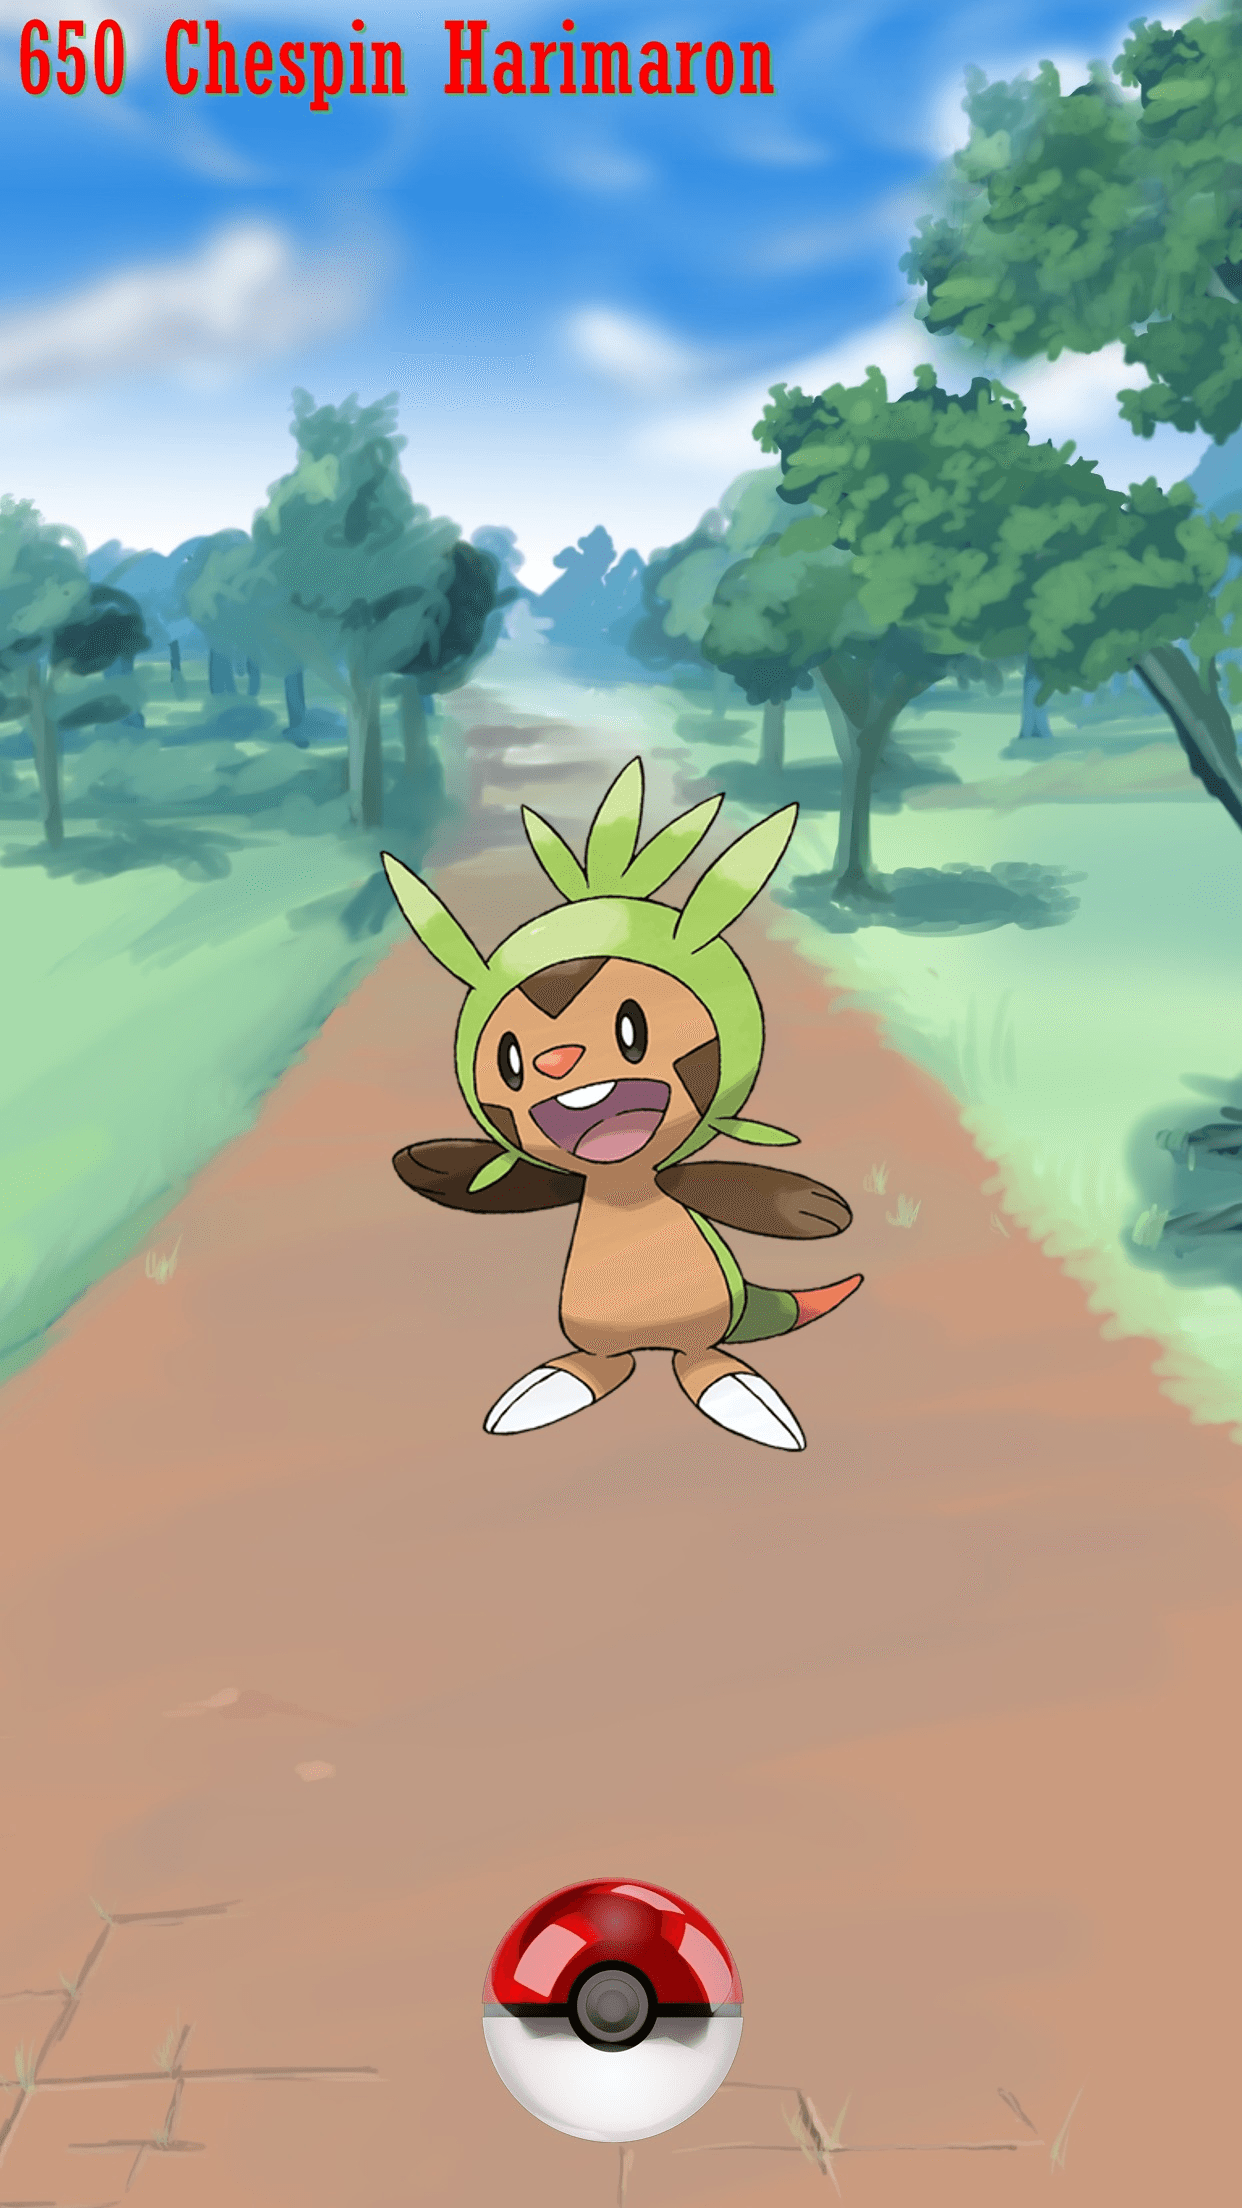 650 Street Pokeball Chespin Harimaron | Wallpaper